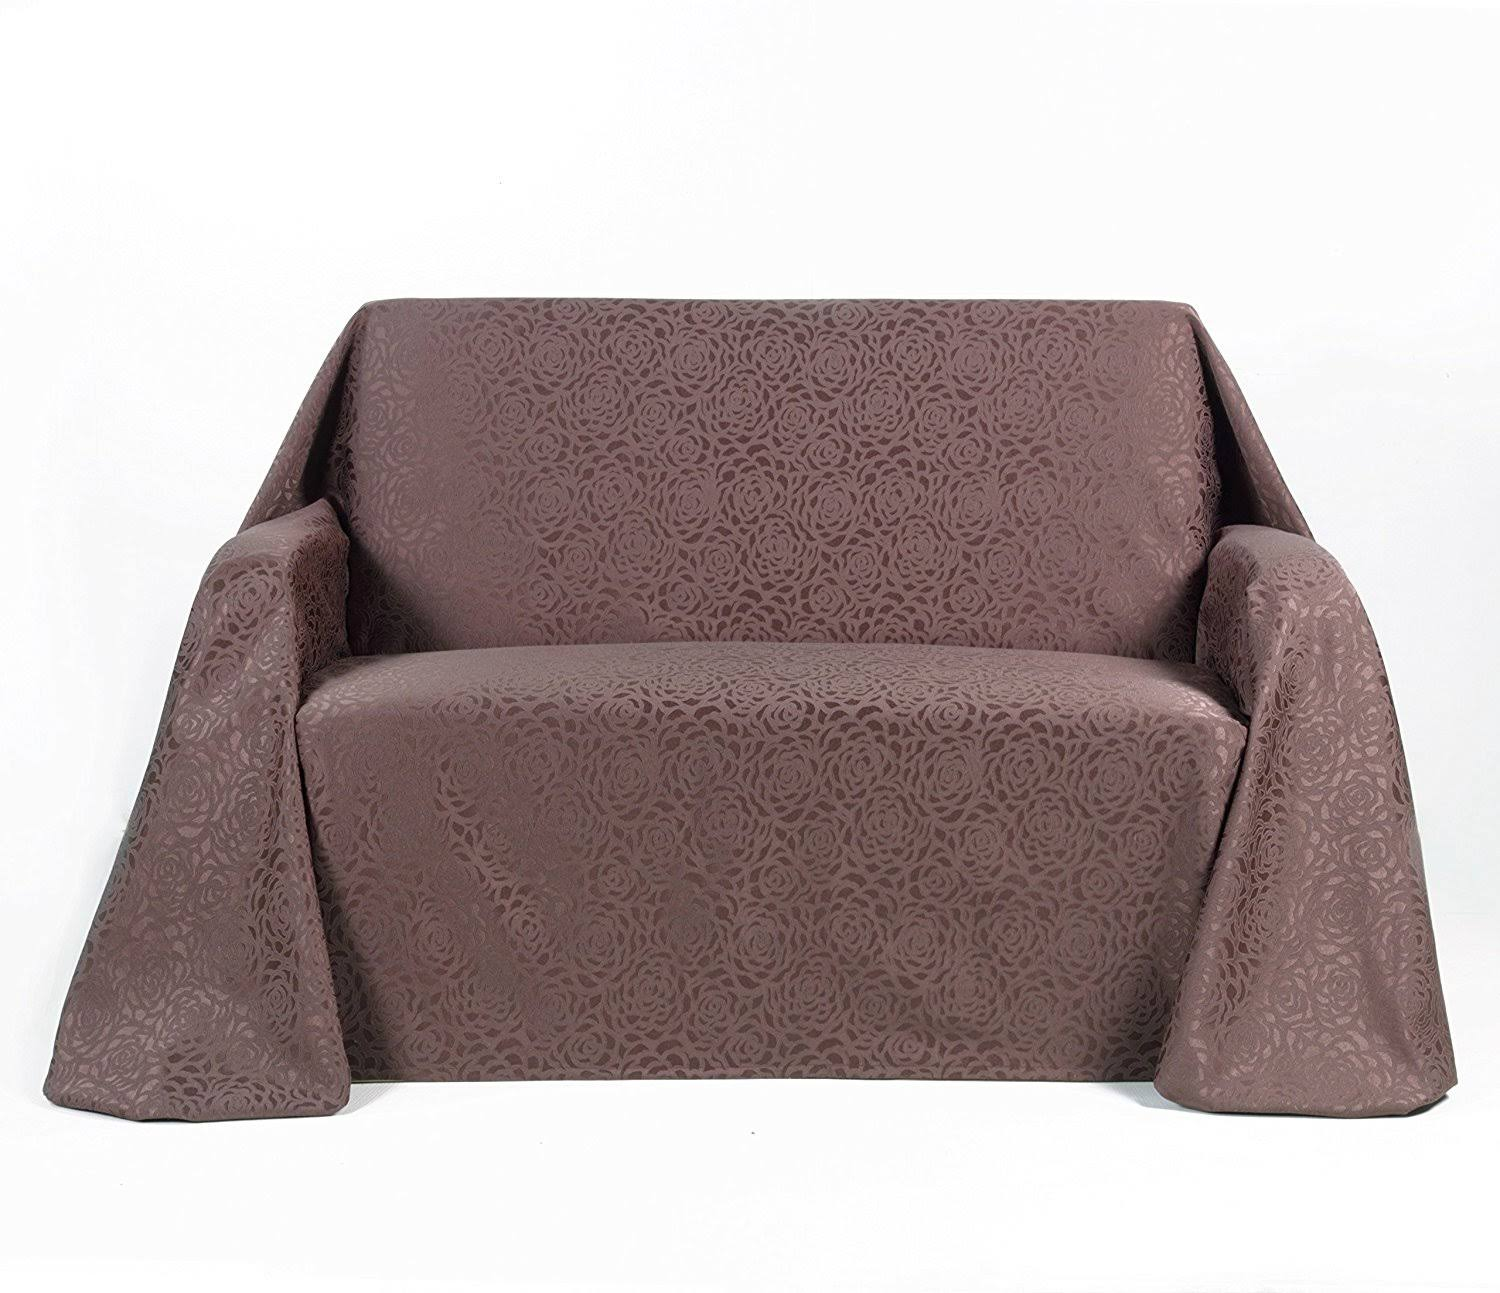 Stylemaster Rosanna Furniture Throw Slipcover - Sofa Cocoa